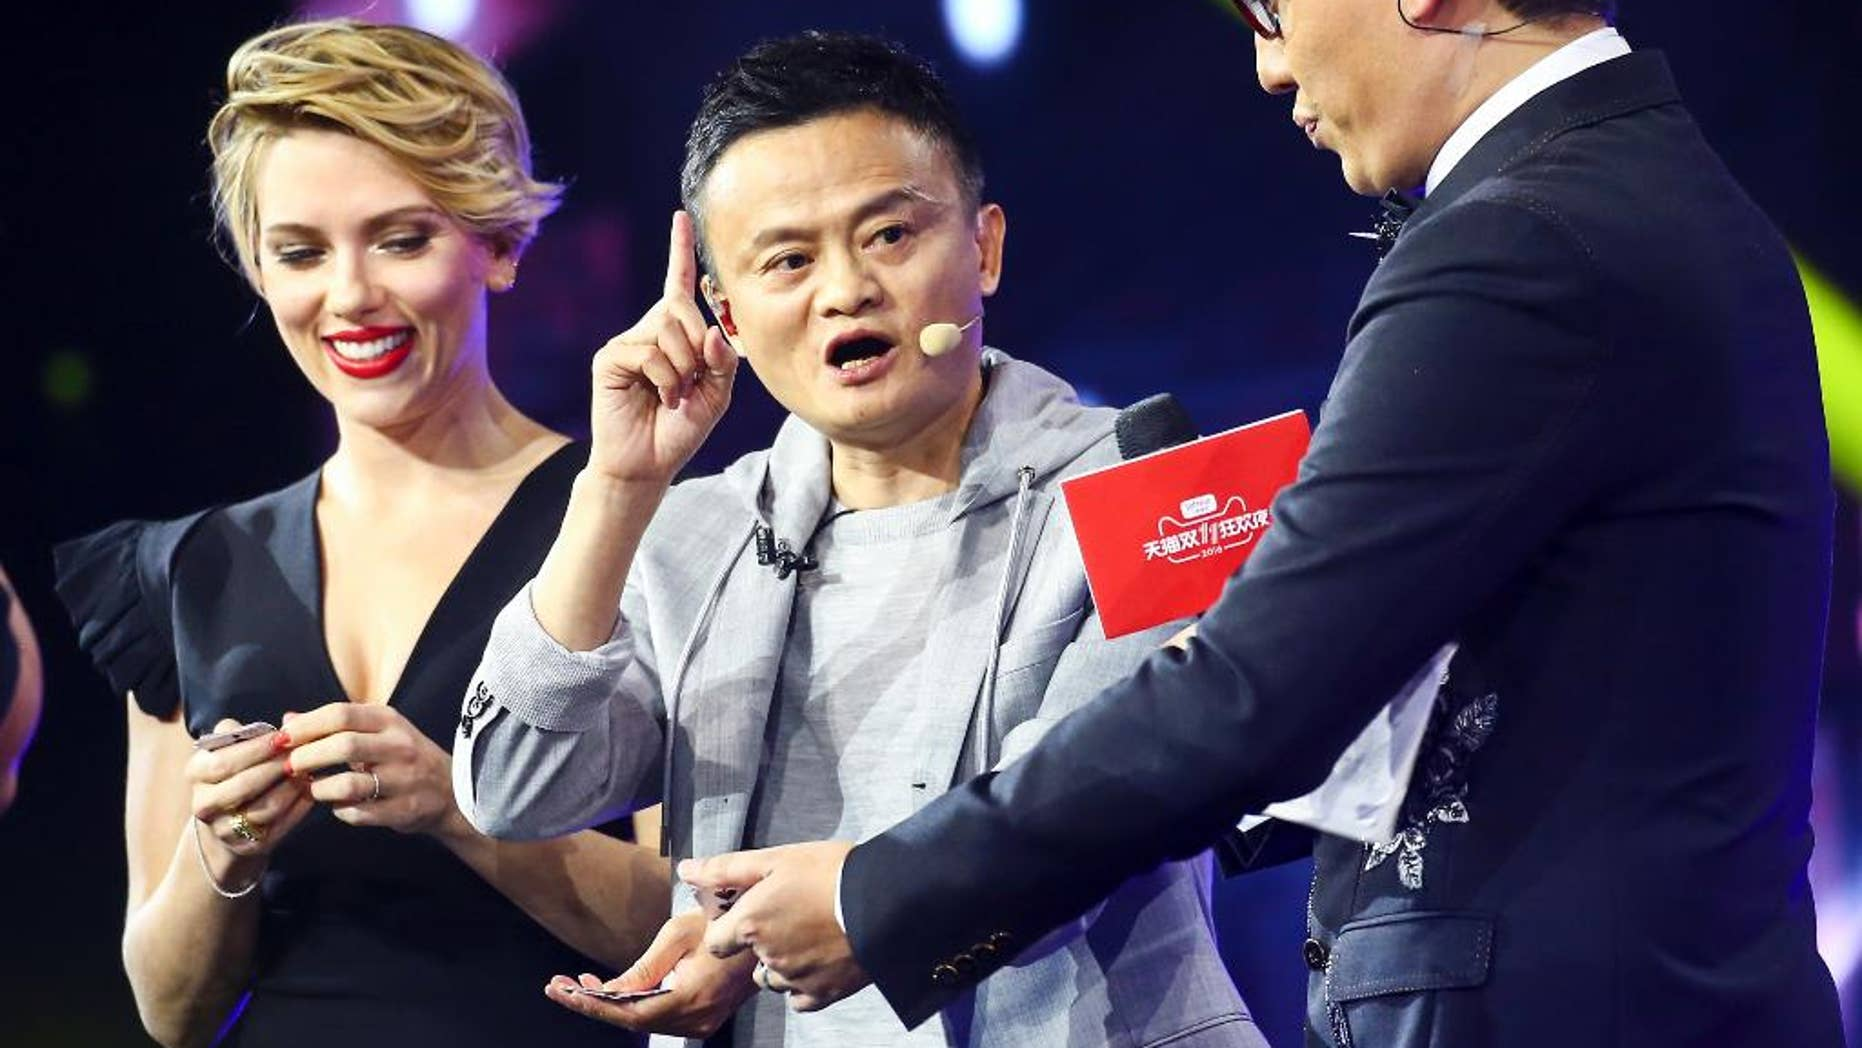 Alibaba's Jack Ma is a Communist, claims China's Party newspaper